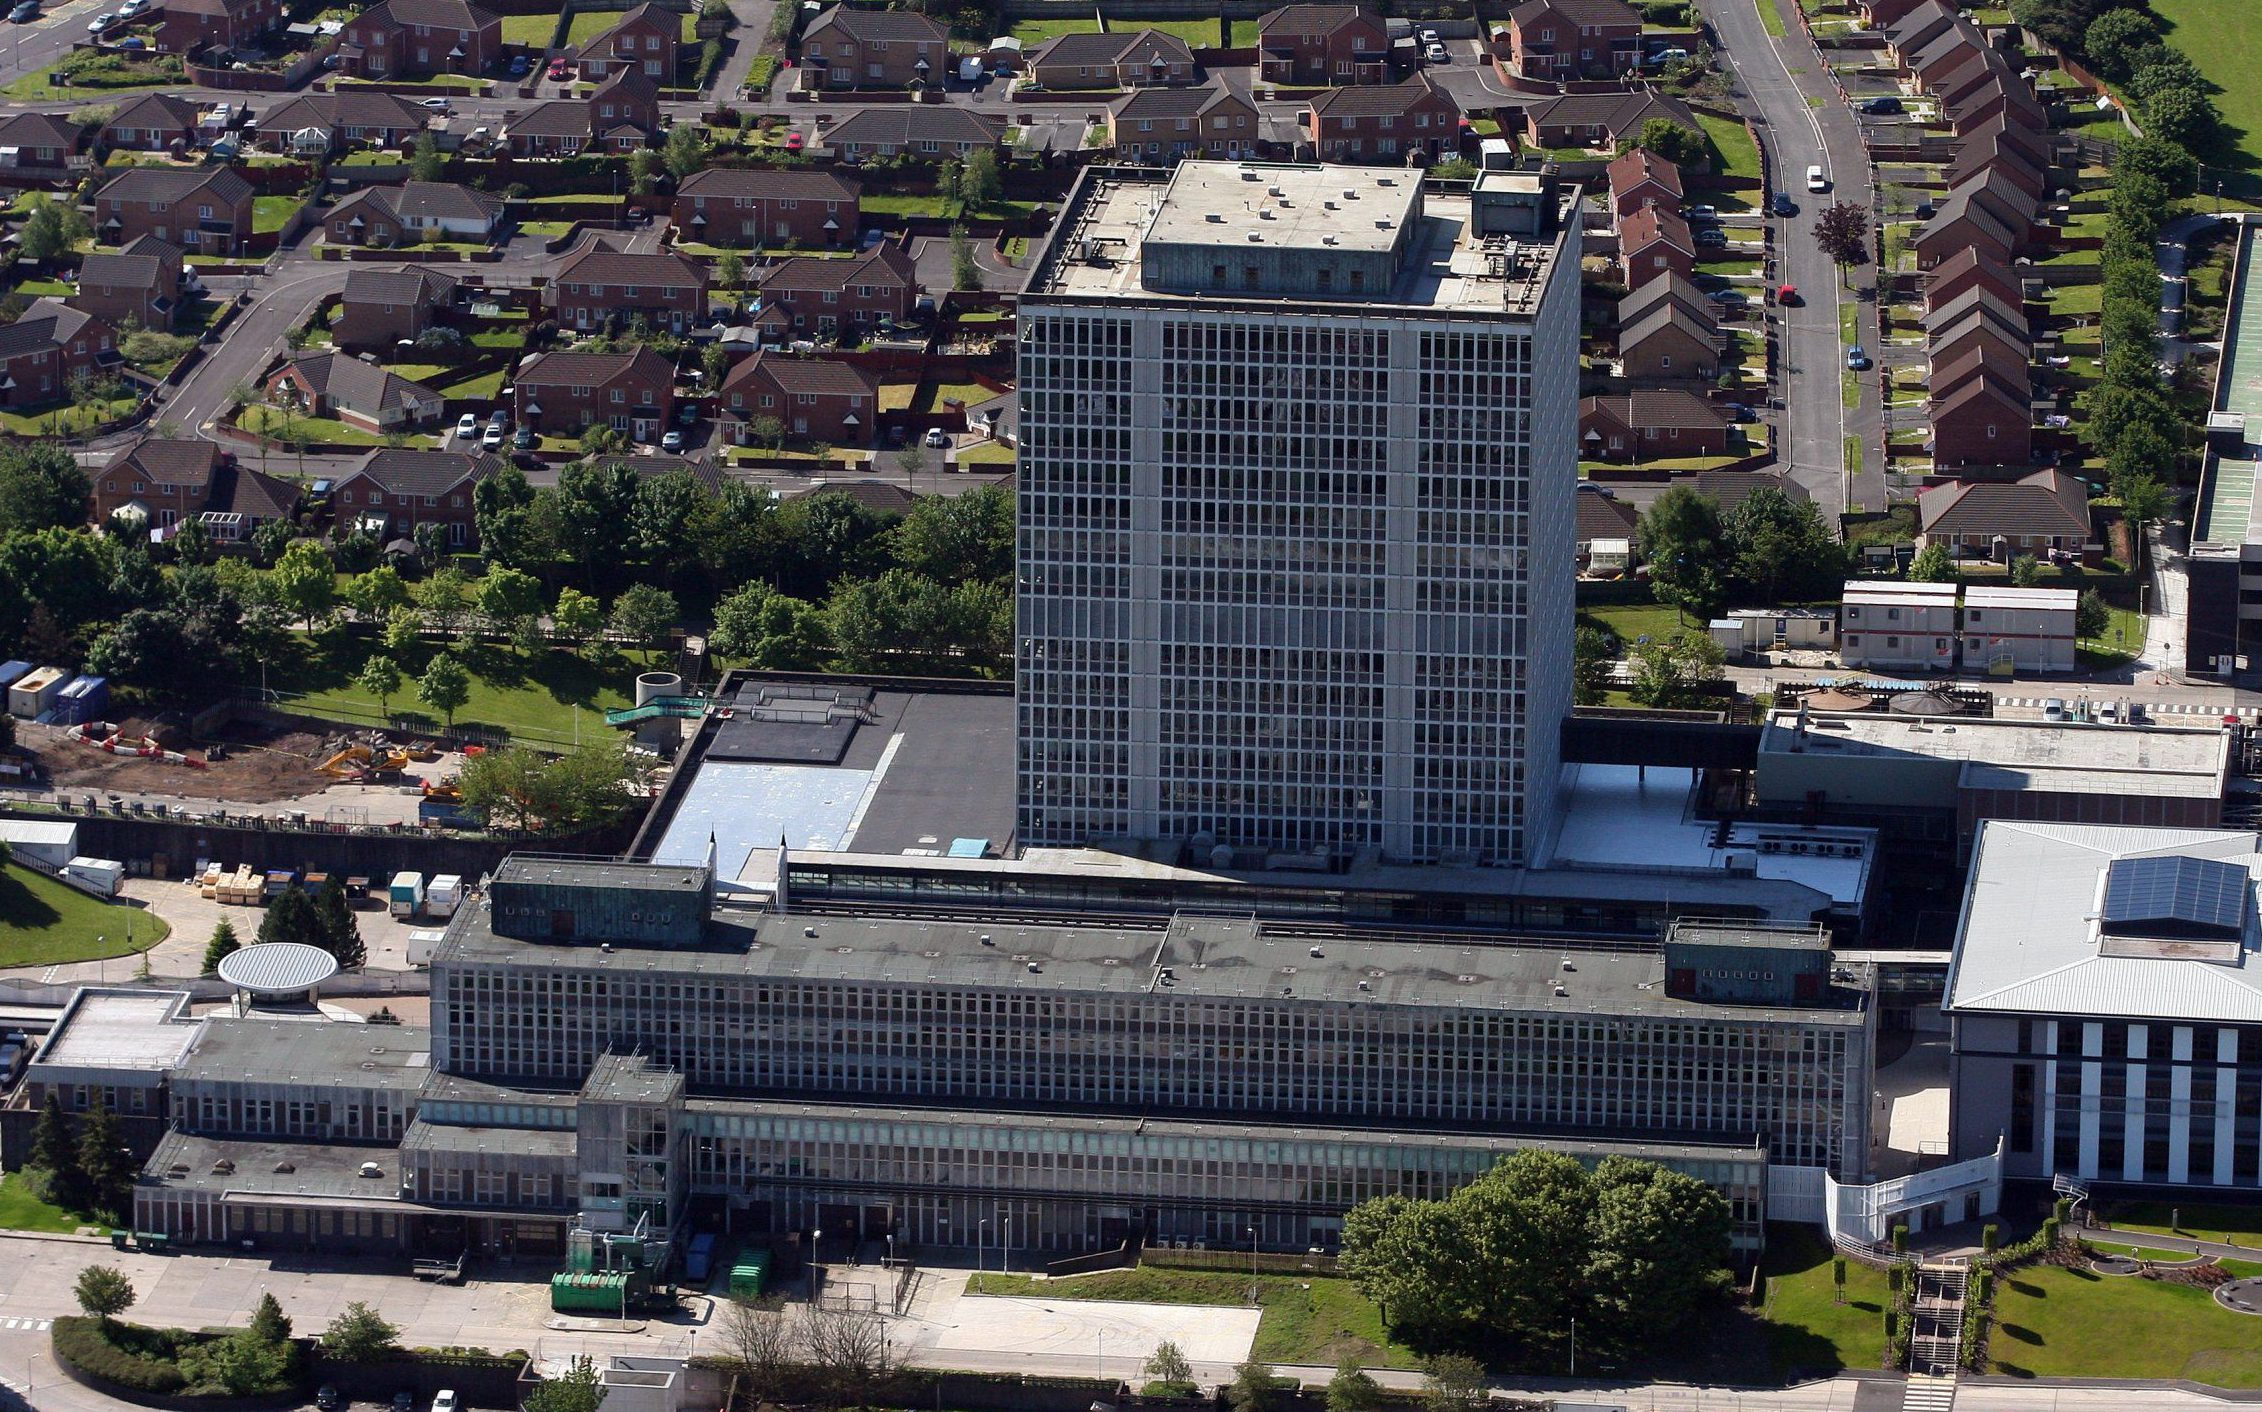 Mandatory Credit: Photo by REX/Shutterstock (1095615ax) Aerial view of DVLA Headquarters Driver and Vehicle Licensing Agency HQ in Morriston, Swansea, Wales, Britain Various